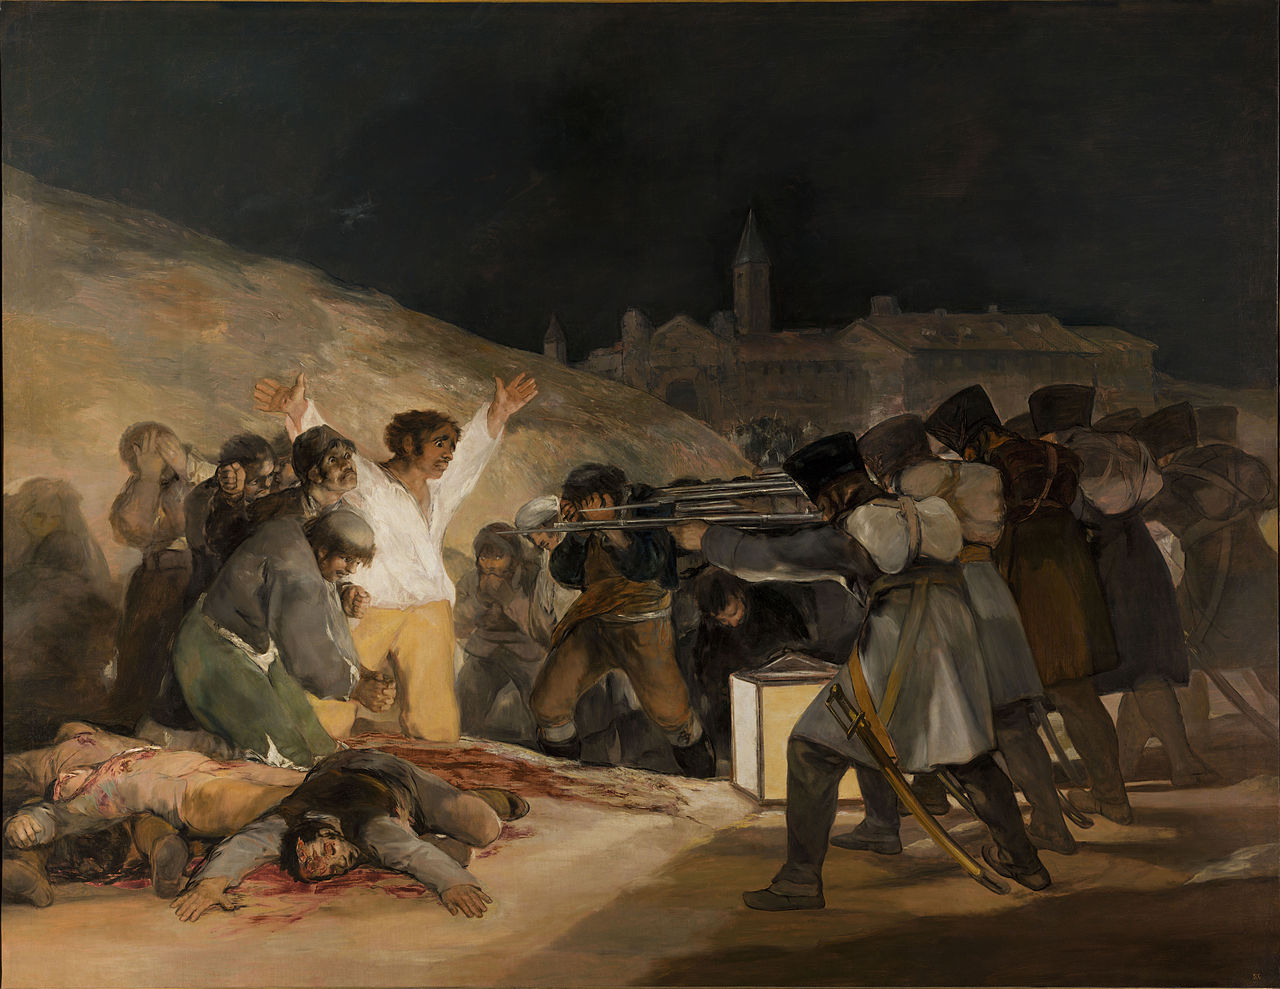 1280px-el_tres_de_mayo_by_francisco_de_goya_from_prado_thin_black_margin